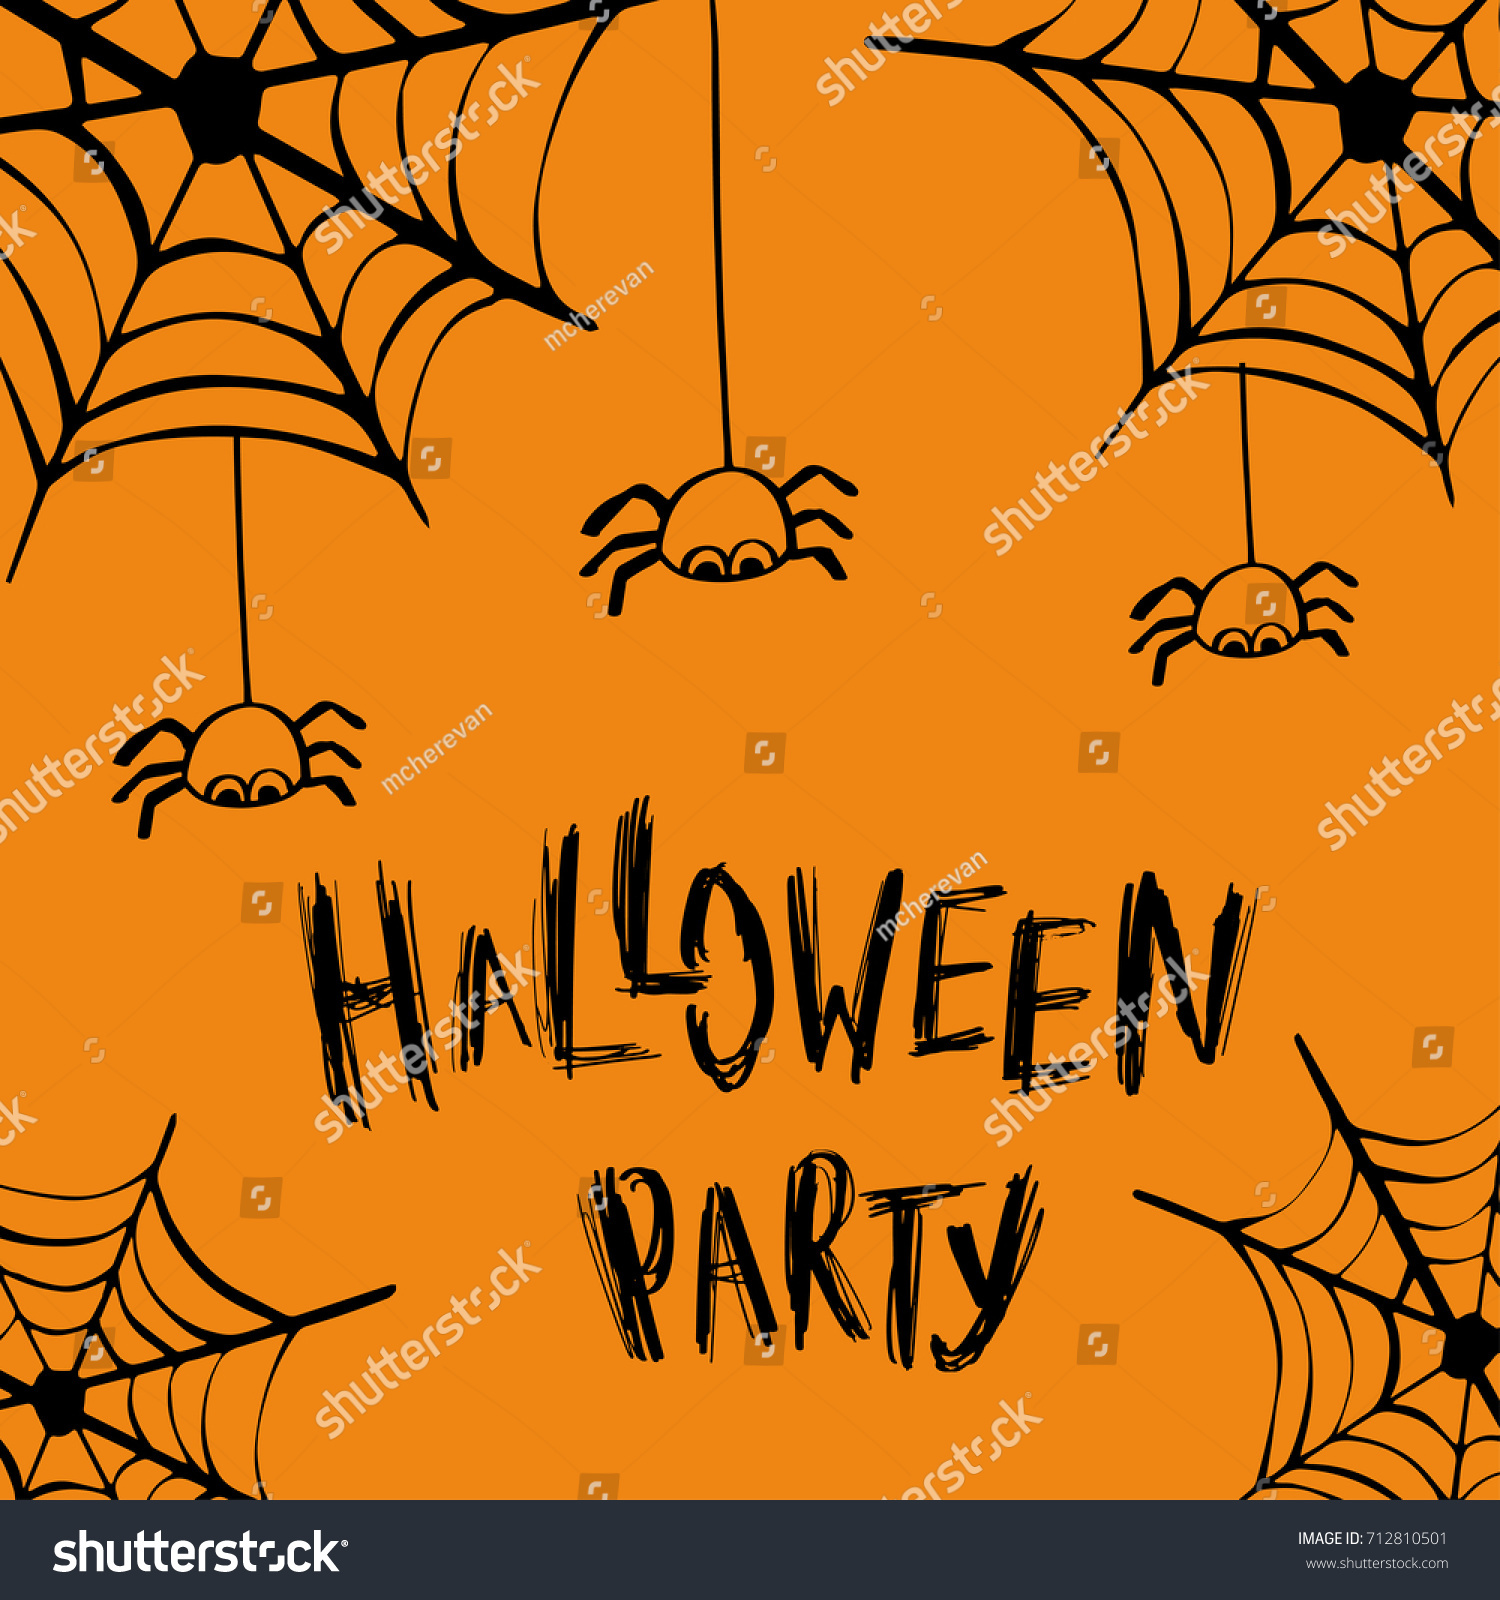 Halloween Party Invitation Card Lettering Design Stock Vector ...